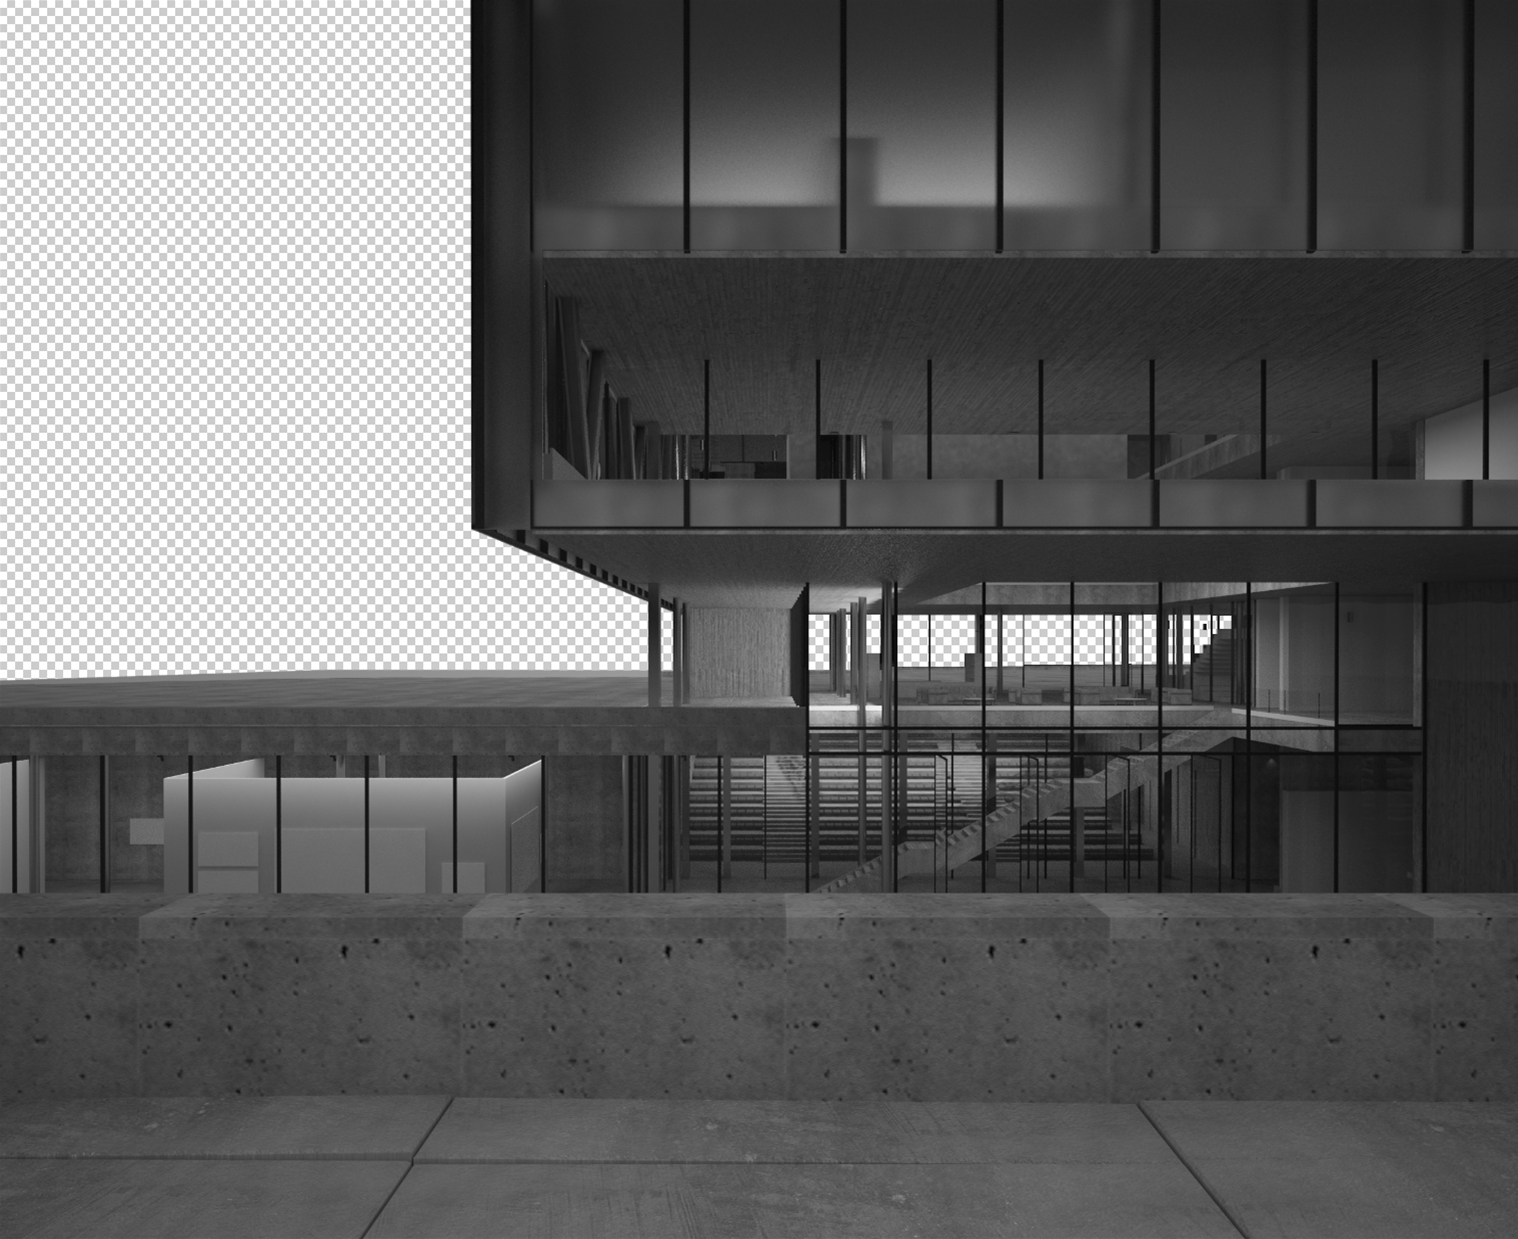 The base render in black and white. The colours disappear and you don't get caught by unrealistic colours, and details anymore.